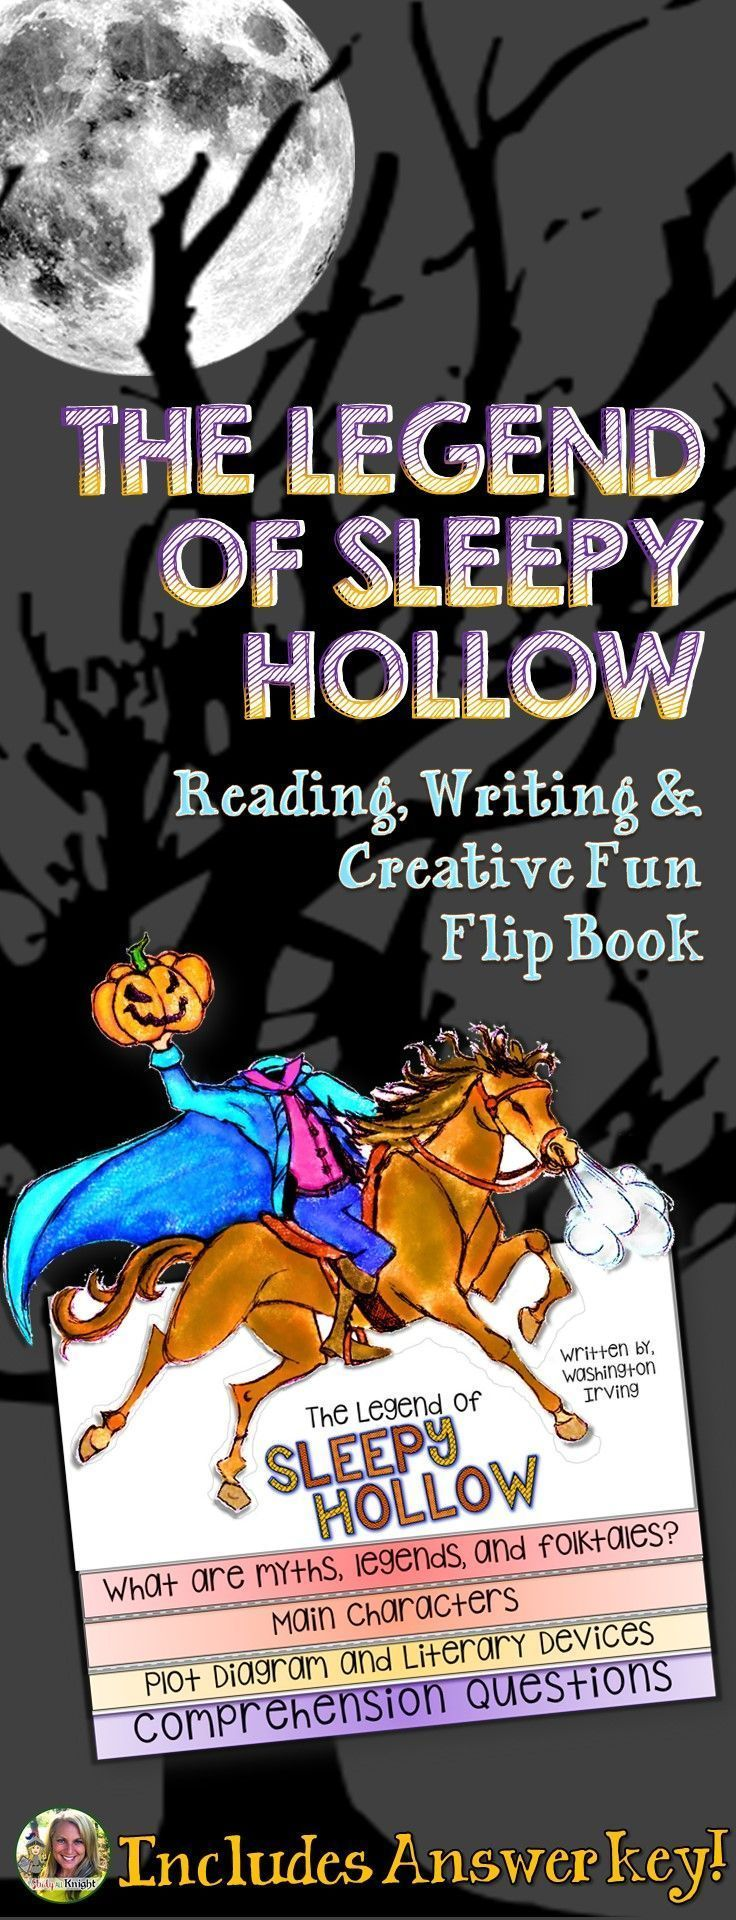 Legend Of Sleepy Hollow Sources for your Essay